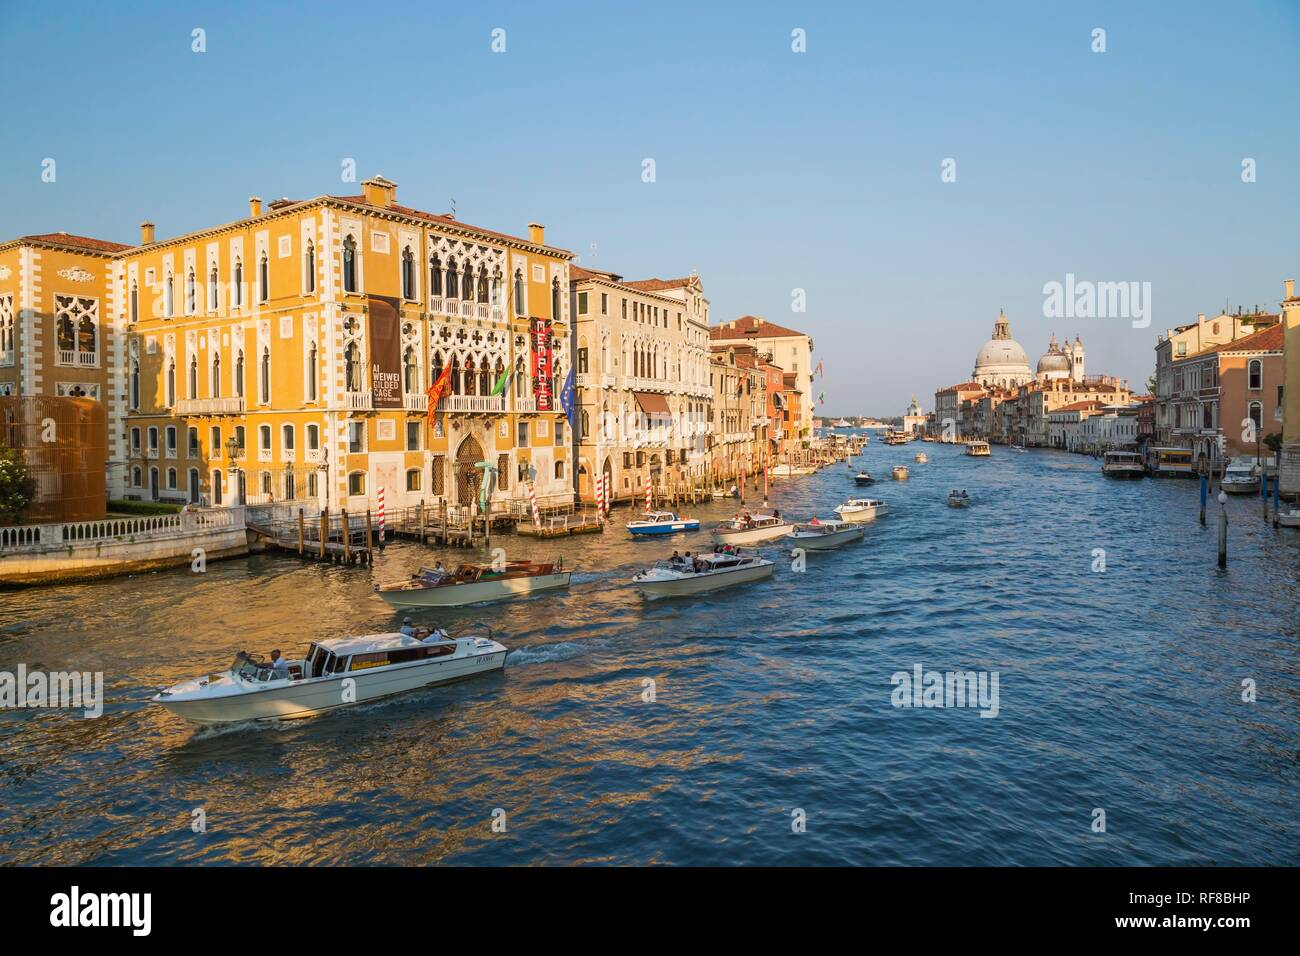 Water taxis and vaporettos on Grand Canal with Renaissance architectural style palace buildings in San Marco and Santa Maria - Stock Image